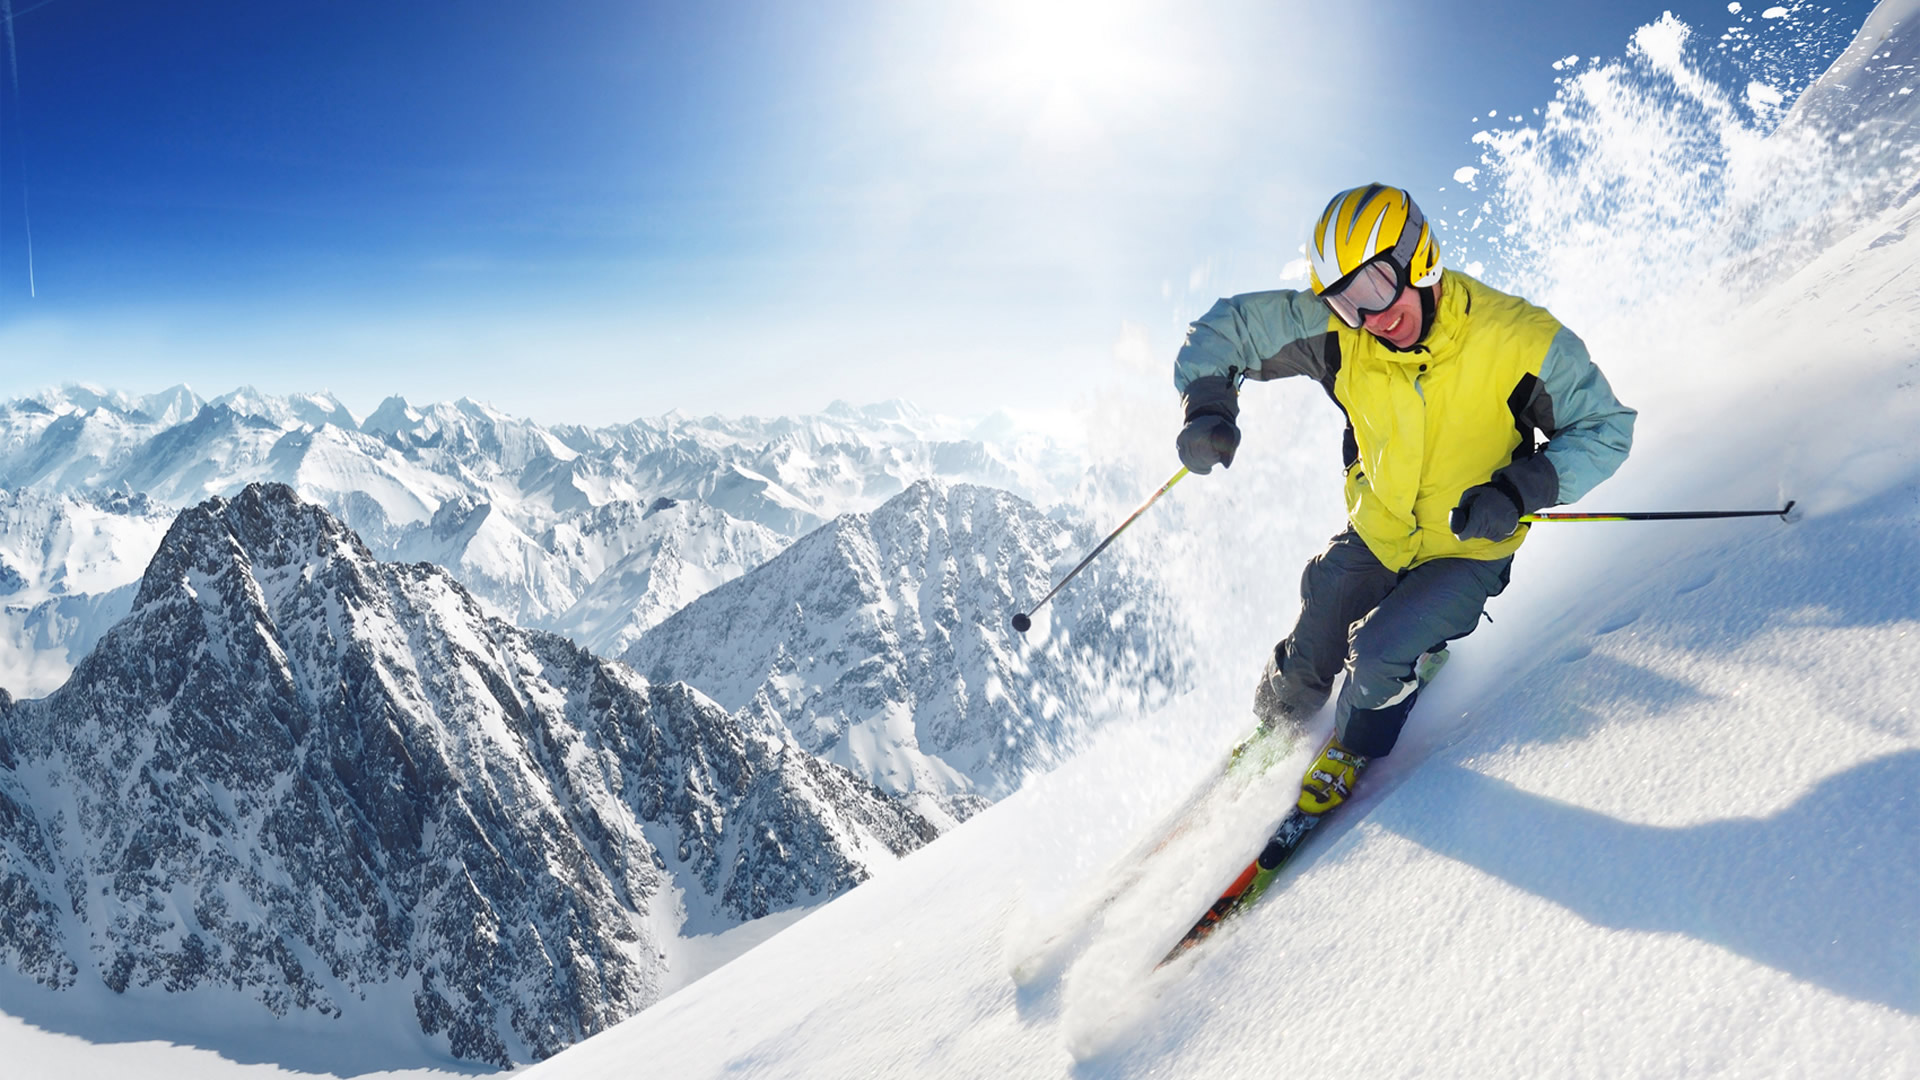 winter sports snowboarding B eech mountain is the place for winter sports up here, cold weather never brings us down in fact, it's the most exciting time of year, and the best time to plan your north carolina ski vacation.